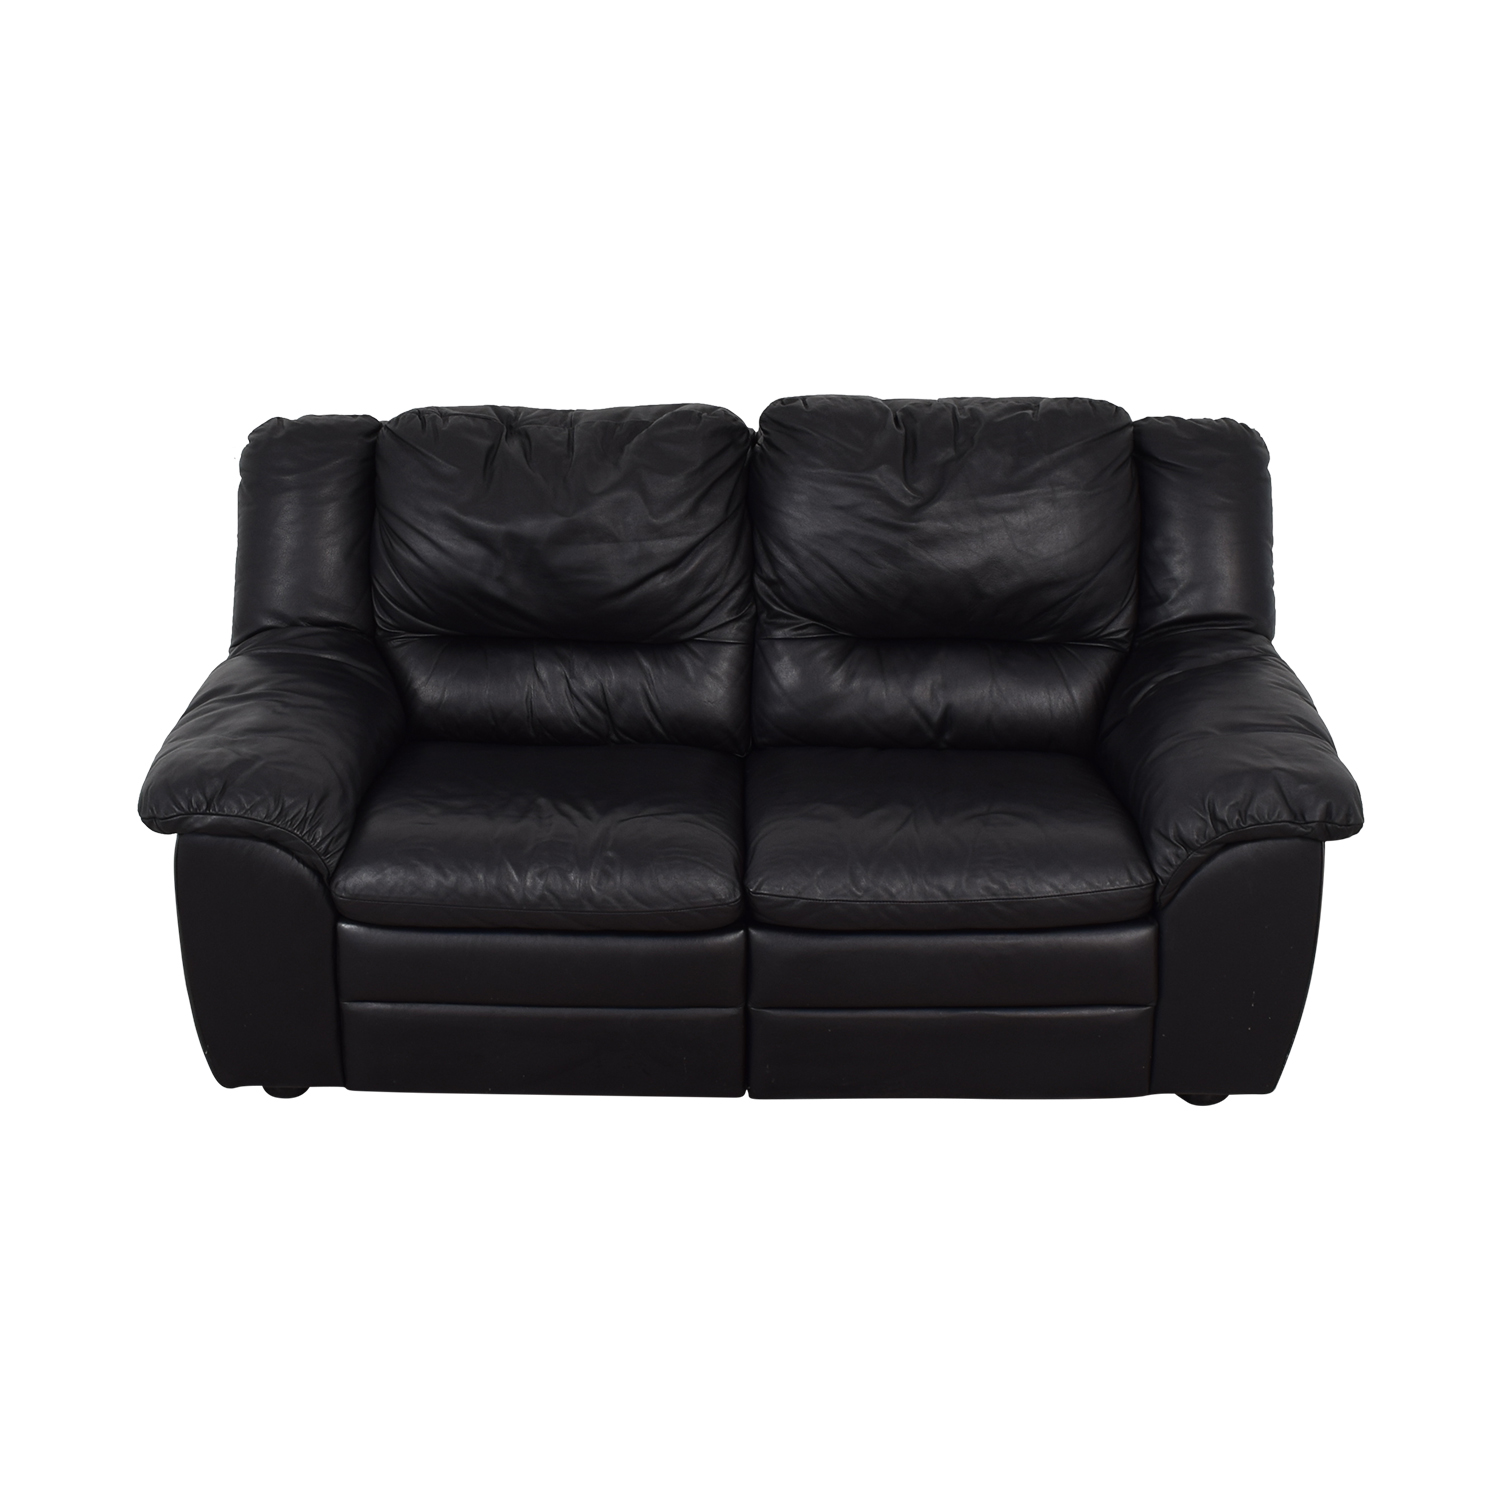 shop Natuzzi Black Leather Two-Cushion Recliner Loveseat Natuzzi Sofas